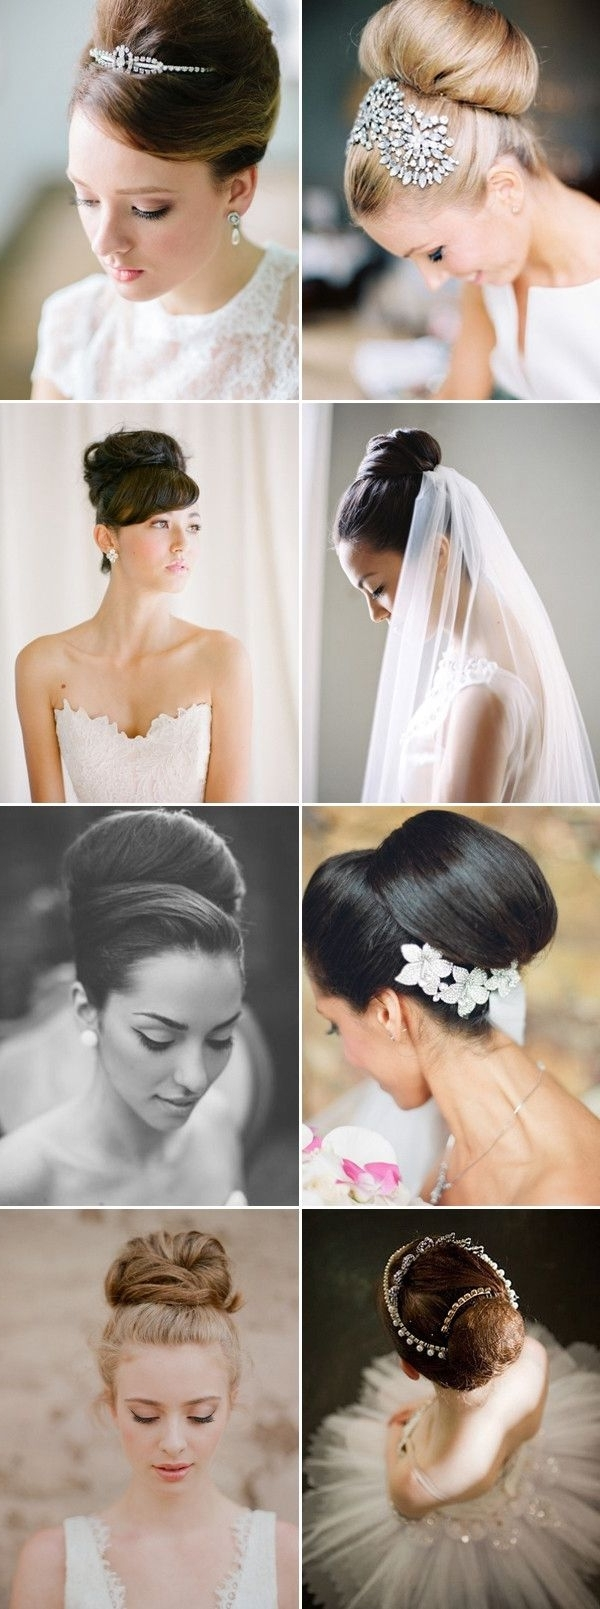 100+ Romantic Long Wedding Hairstyles 2018 – Curls, Half Up, Updos Pertaining To Newest Audrey Hepburn Wedding Hairstyles (View 3 of 15)